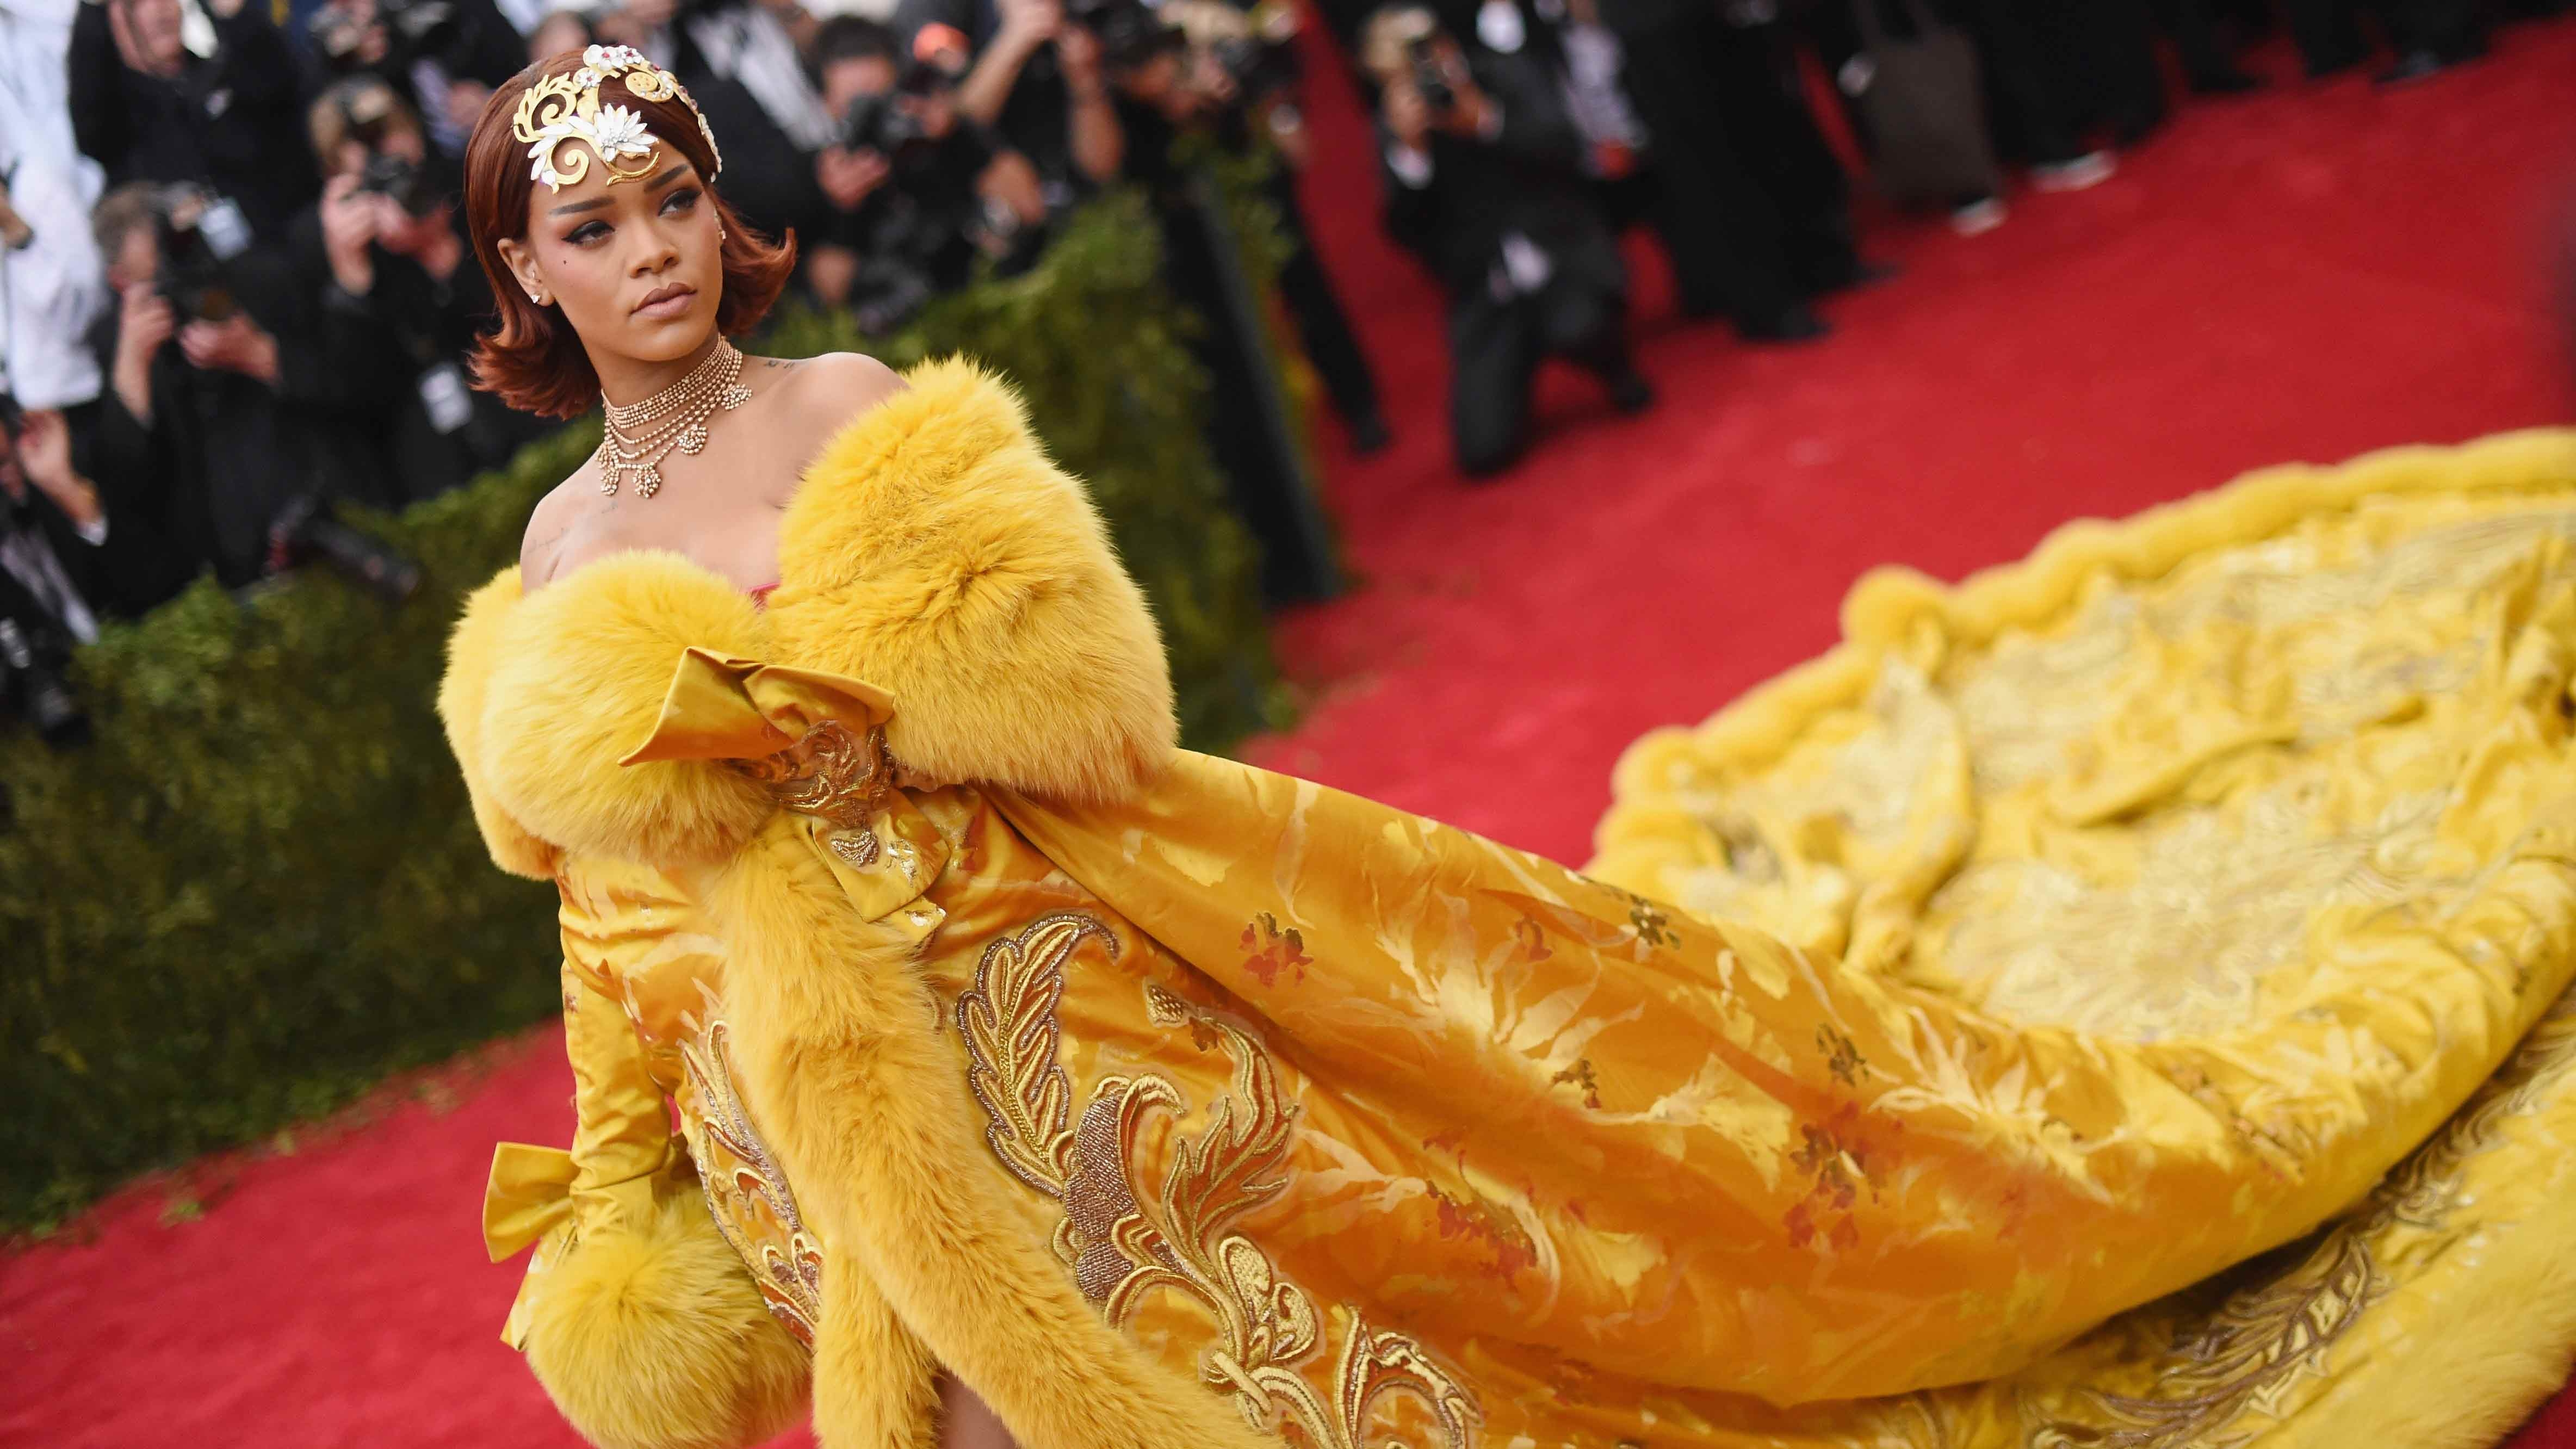 Met Gala 2018: What You Need To Know